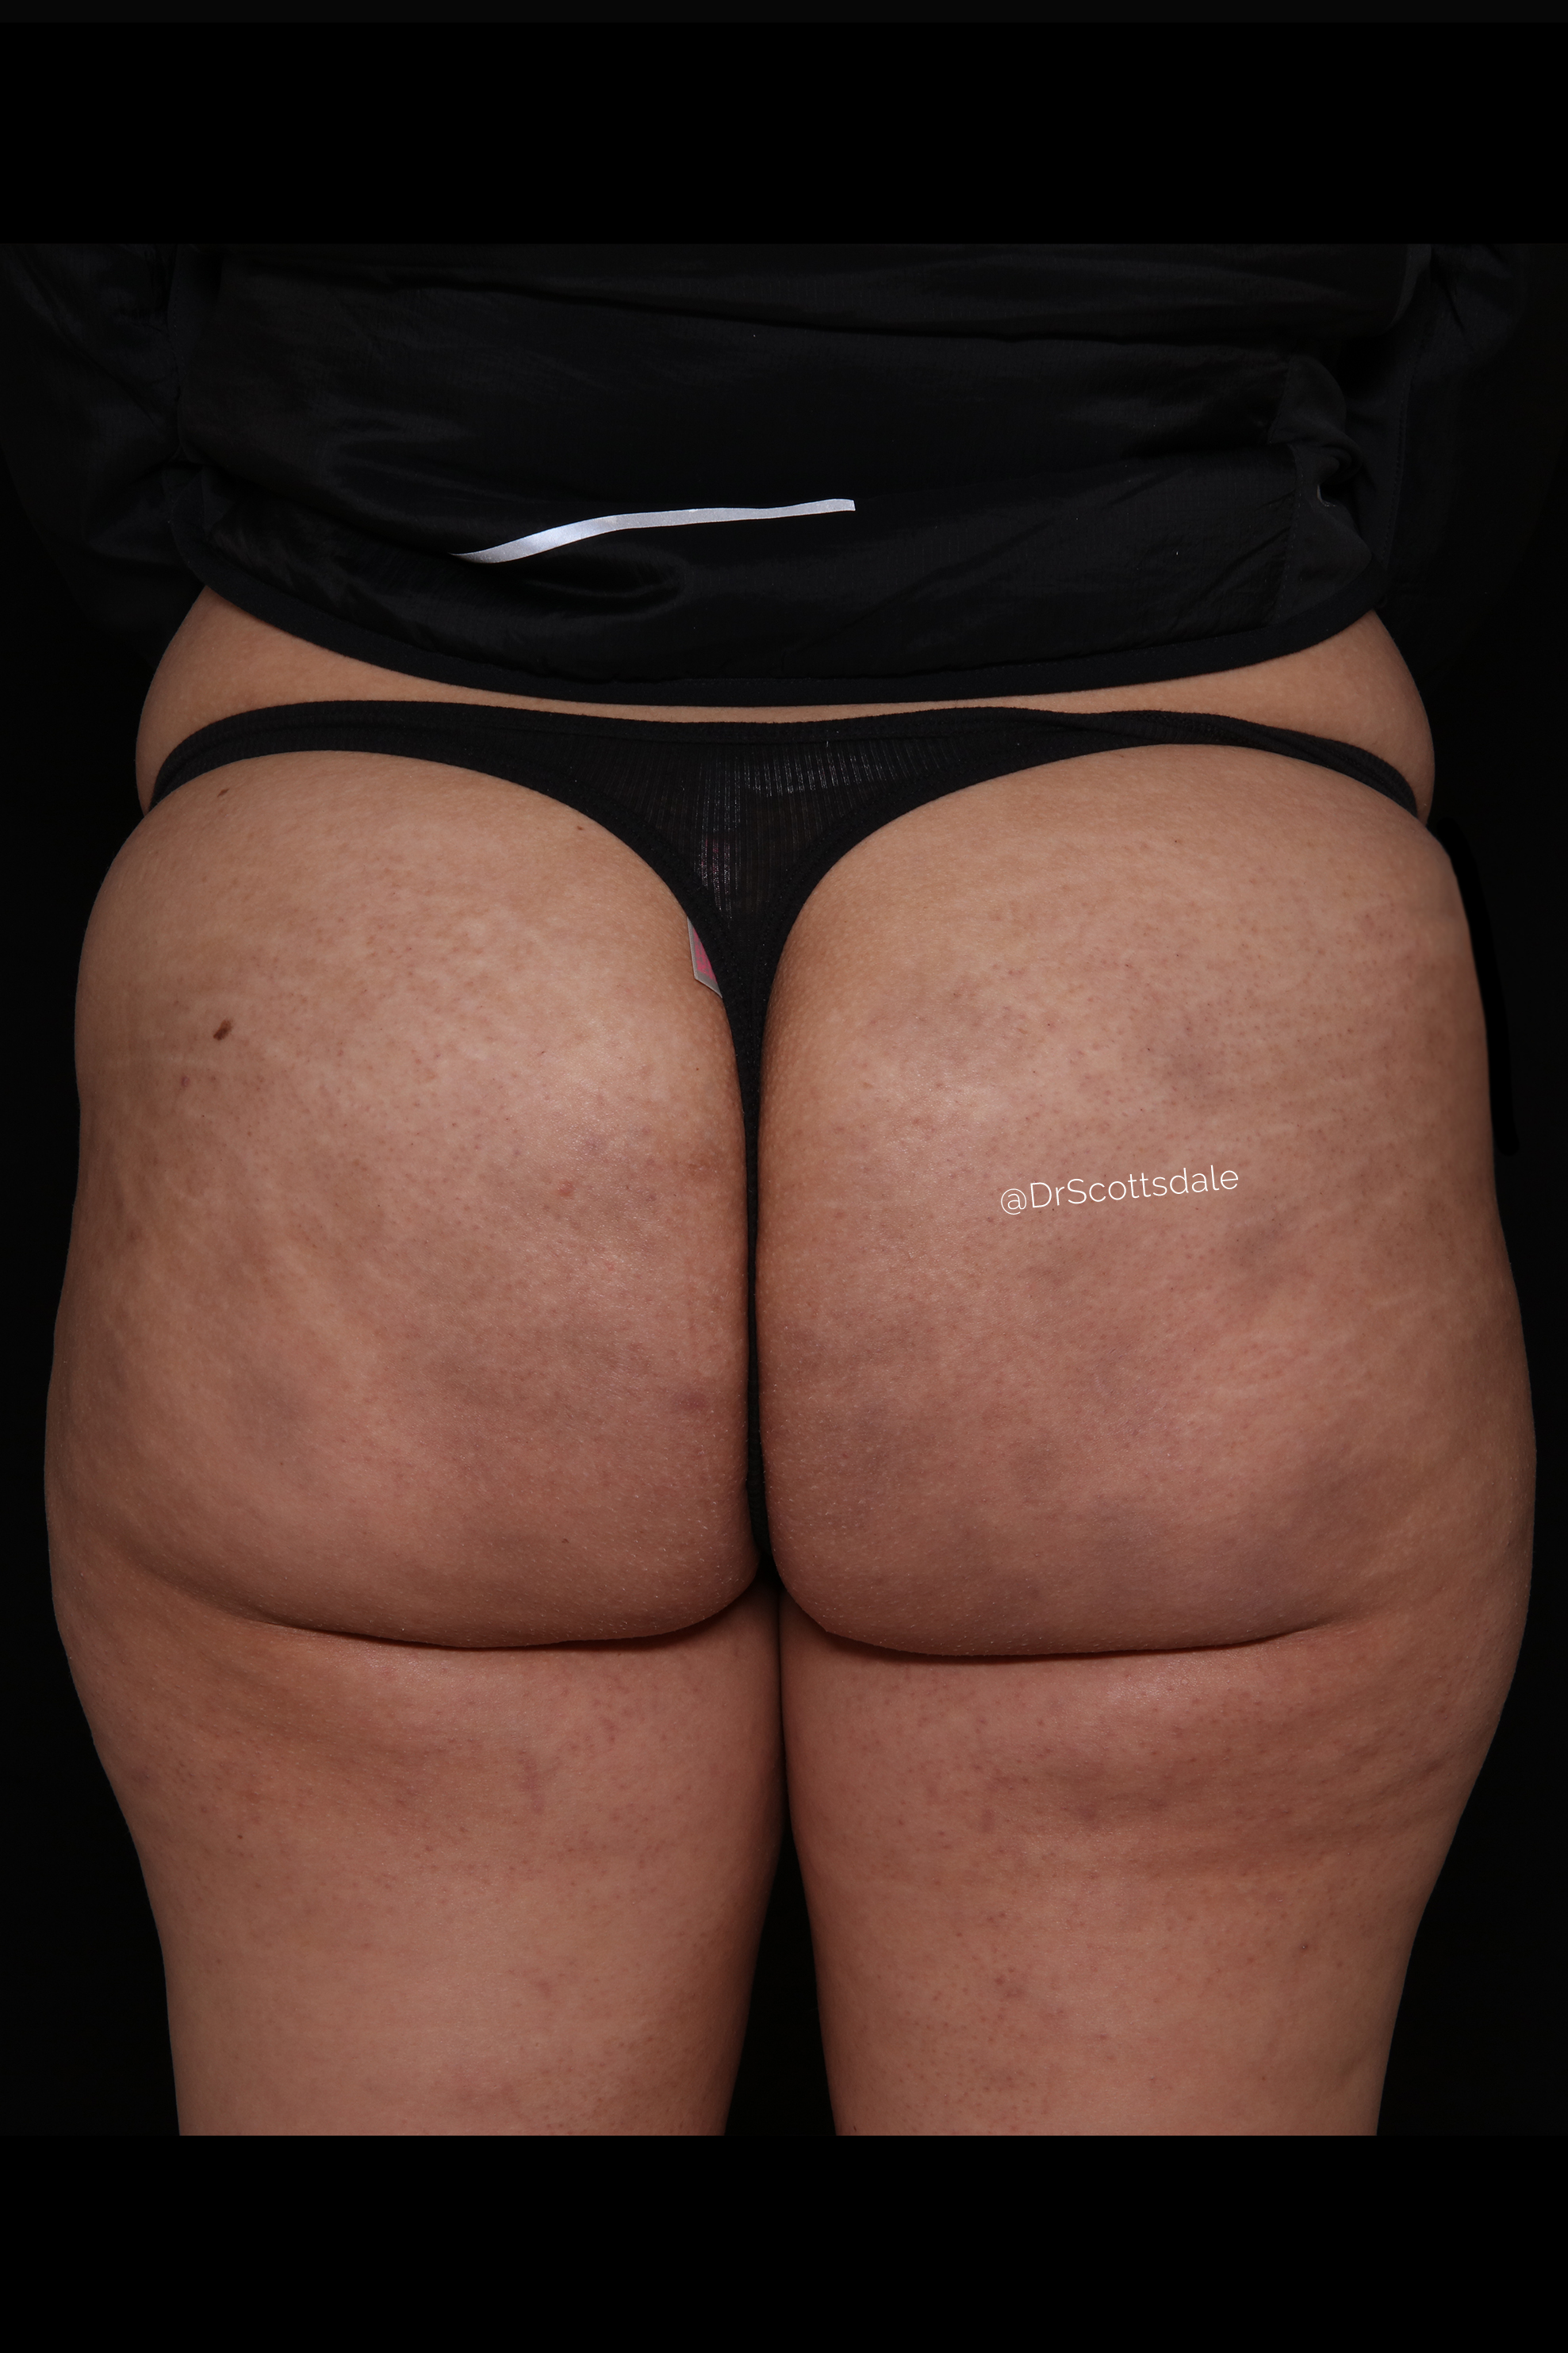 After Cellulite Reduction - Qwo - Cellulite Reduction by injections